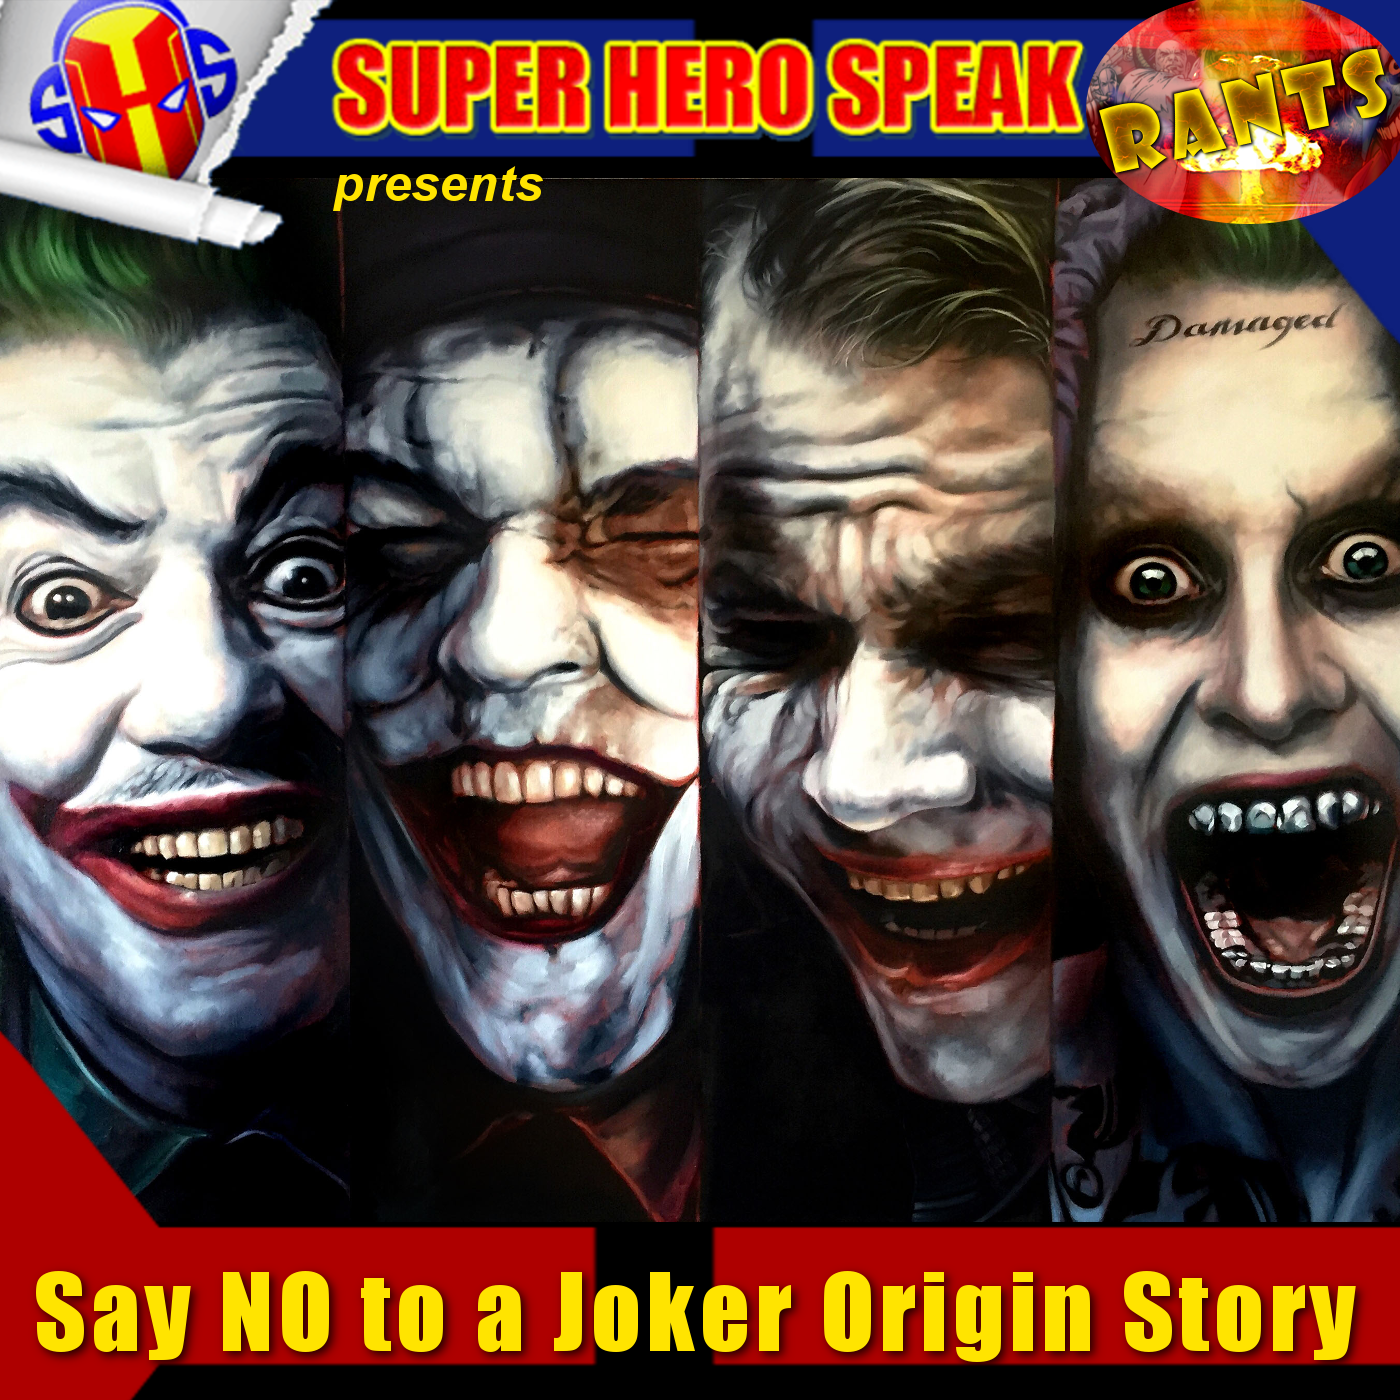 Rant: Say NO to a Joker Origin Story